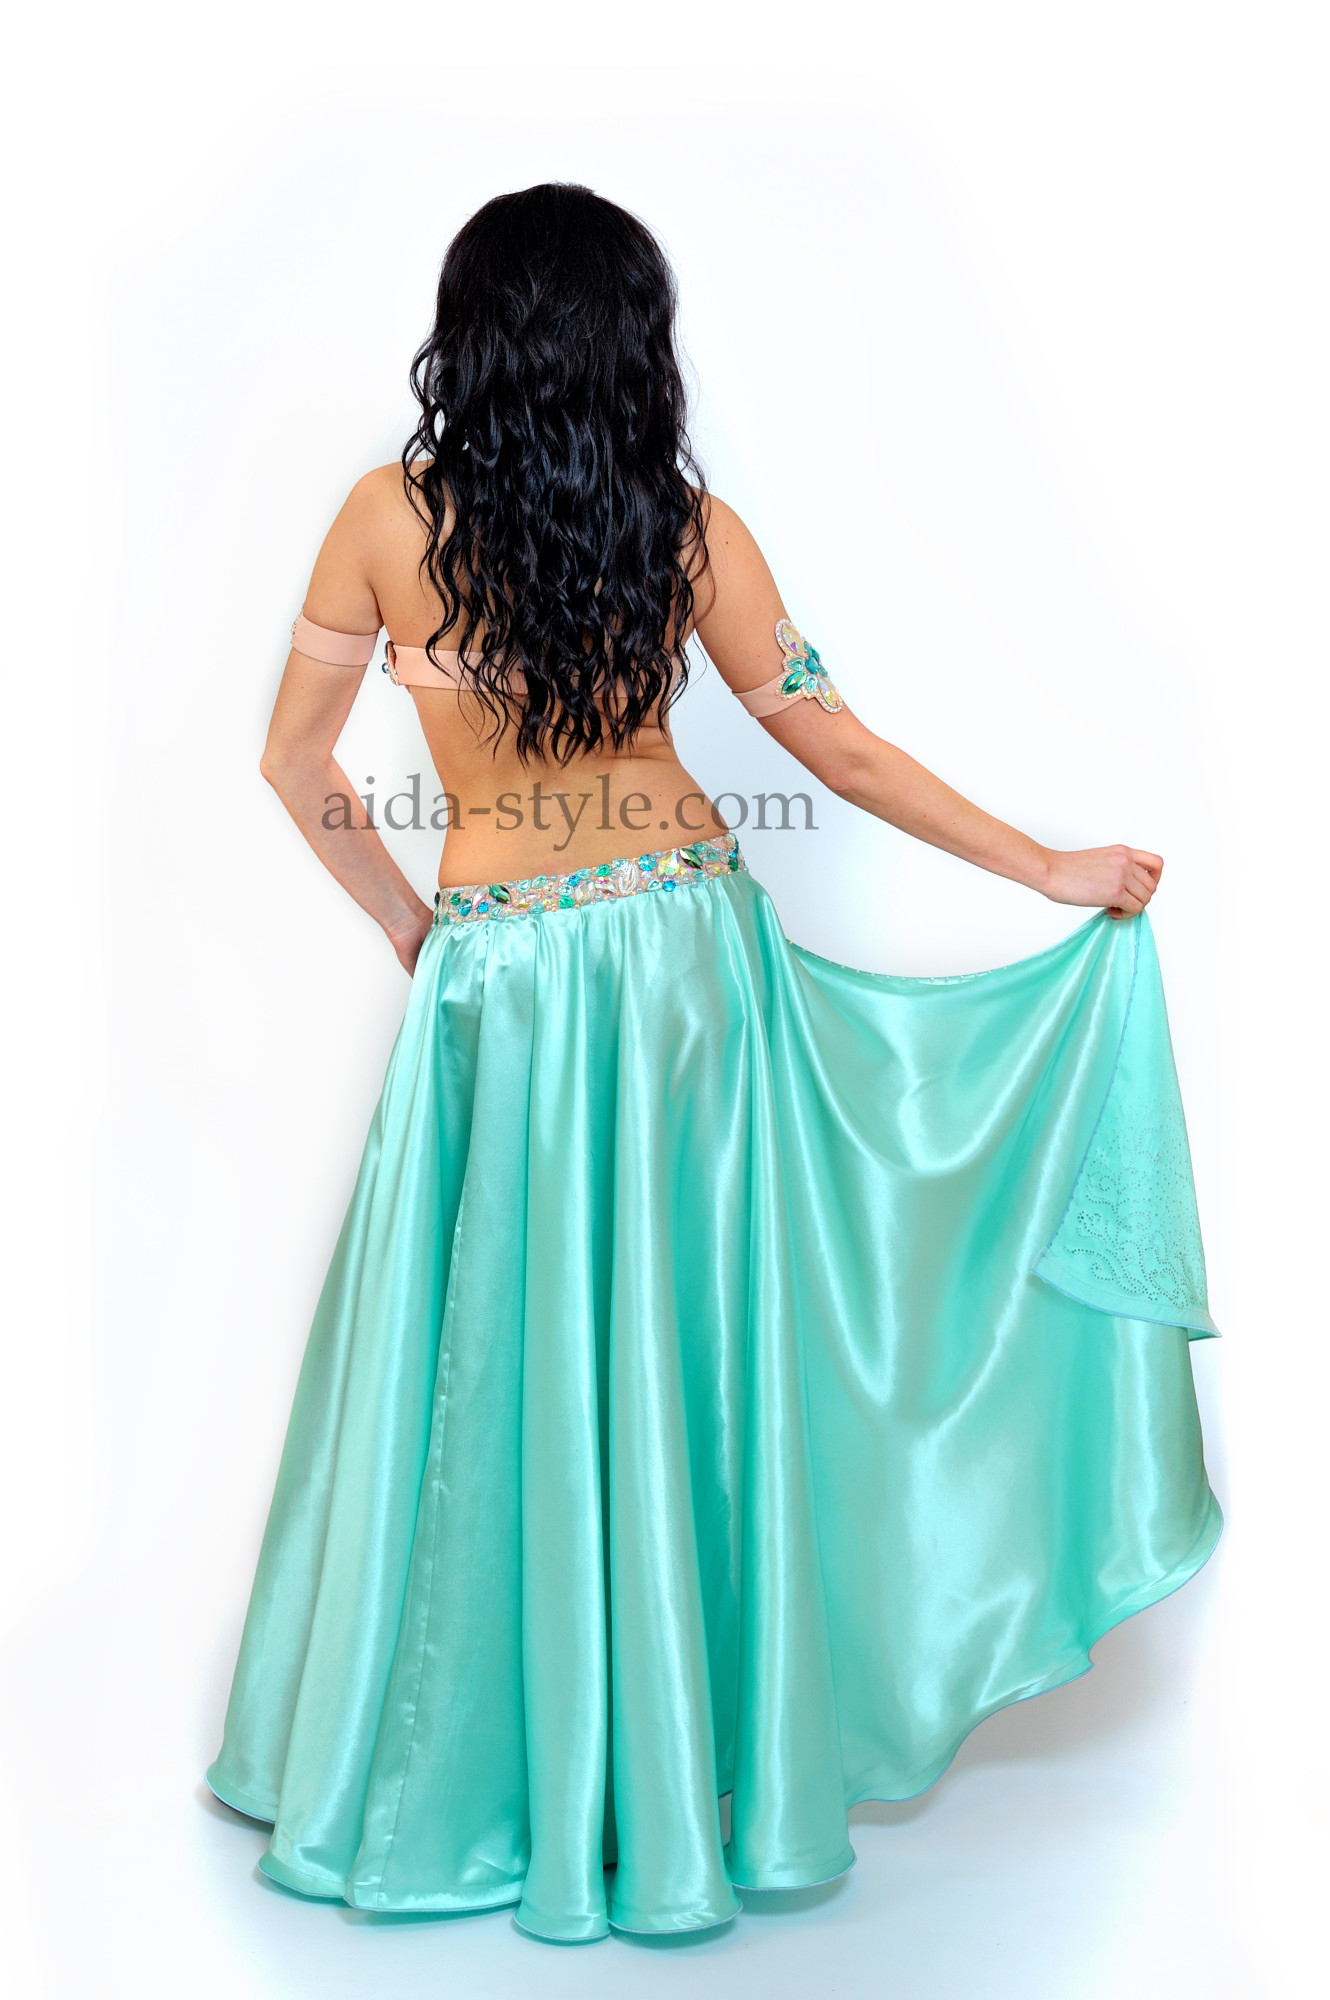 Professional belly dance costume in azure-blue color with long bouffant skirt